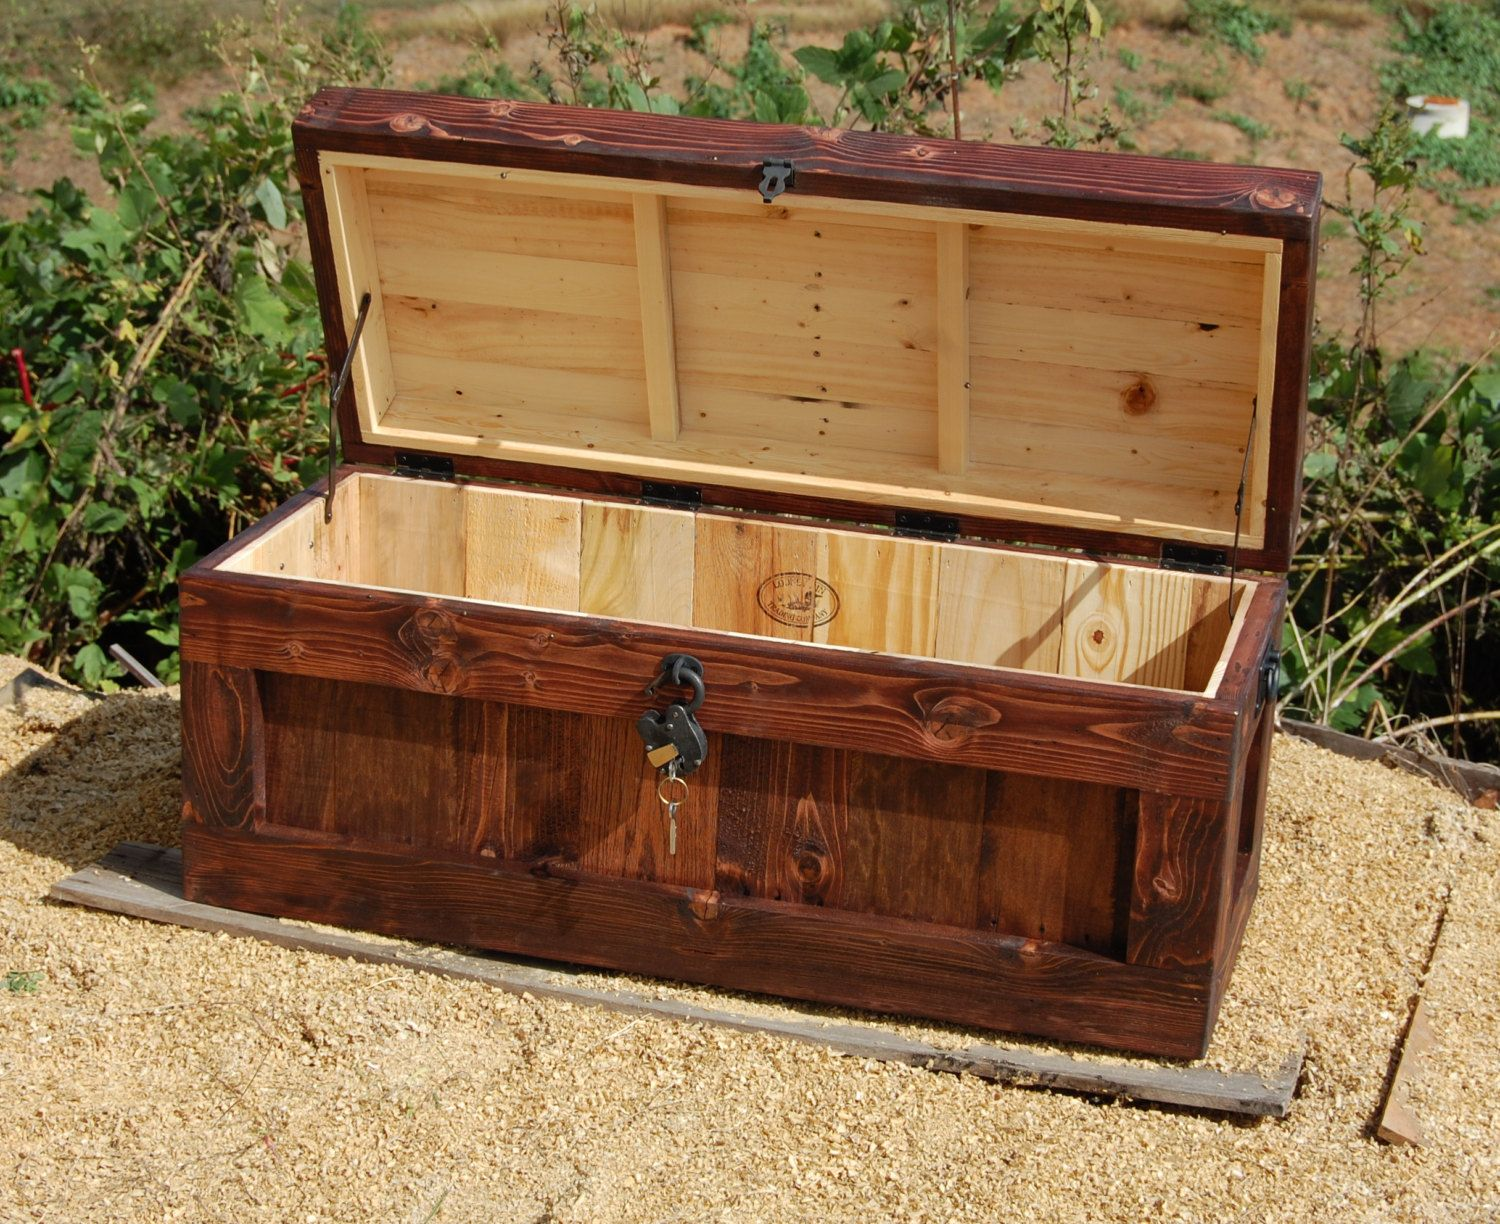 Wonderful Chest With Lock/ Hope Chest/ Wooden Trunk/ Coffee Table/ Storage/ Padlock